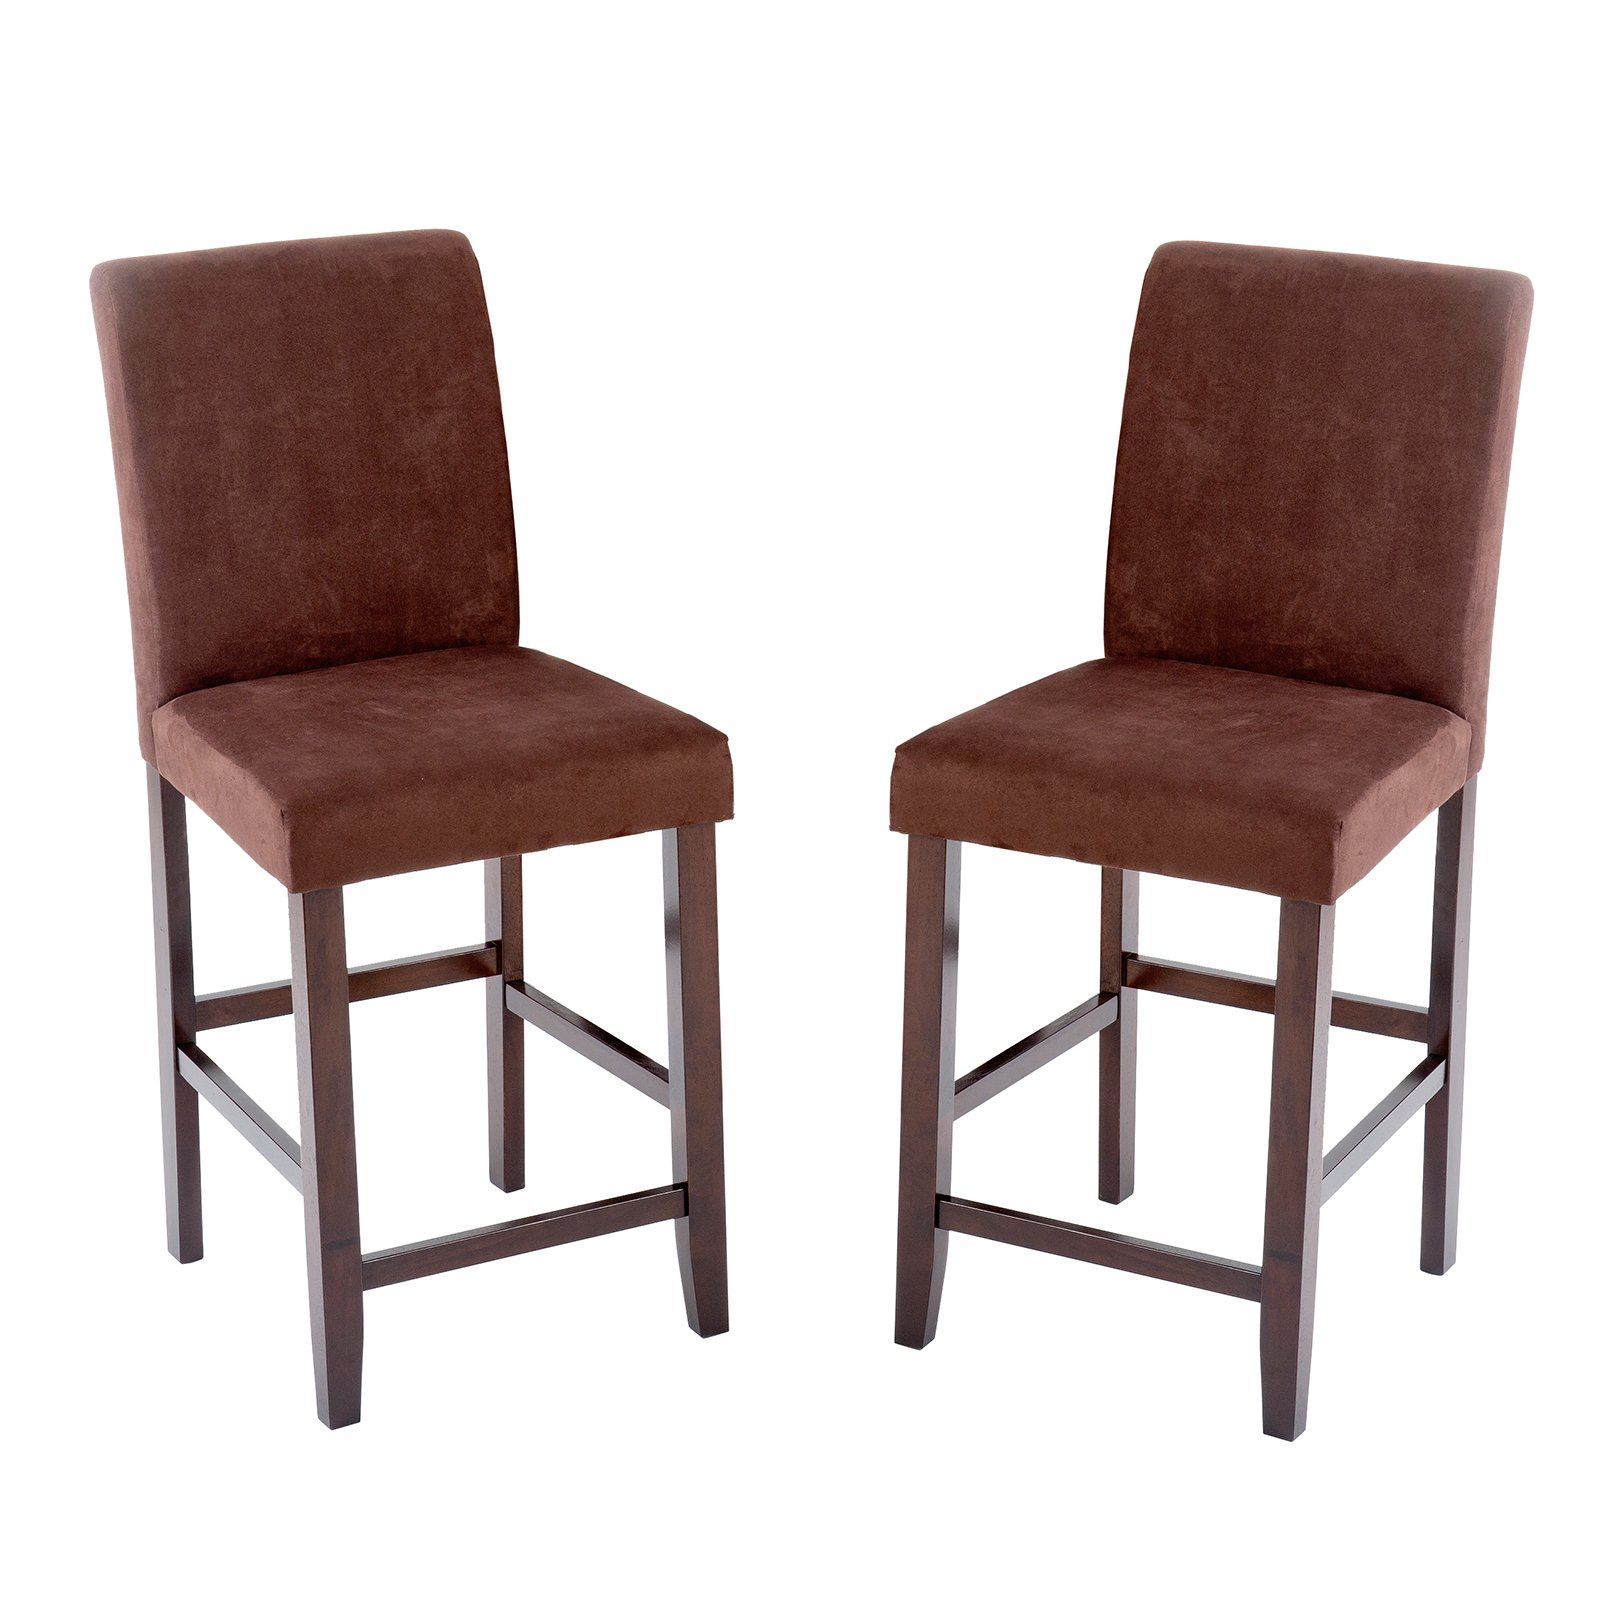 Imagio Home Loft Counter Stools 24 Quot Set Of 2 Brown